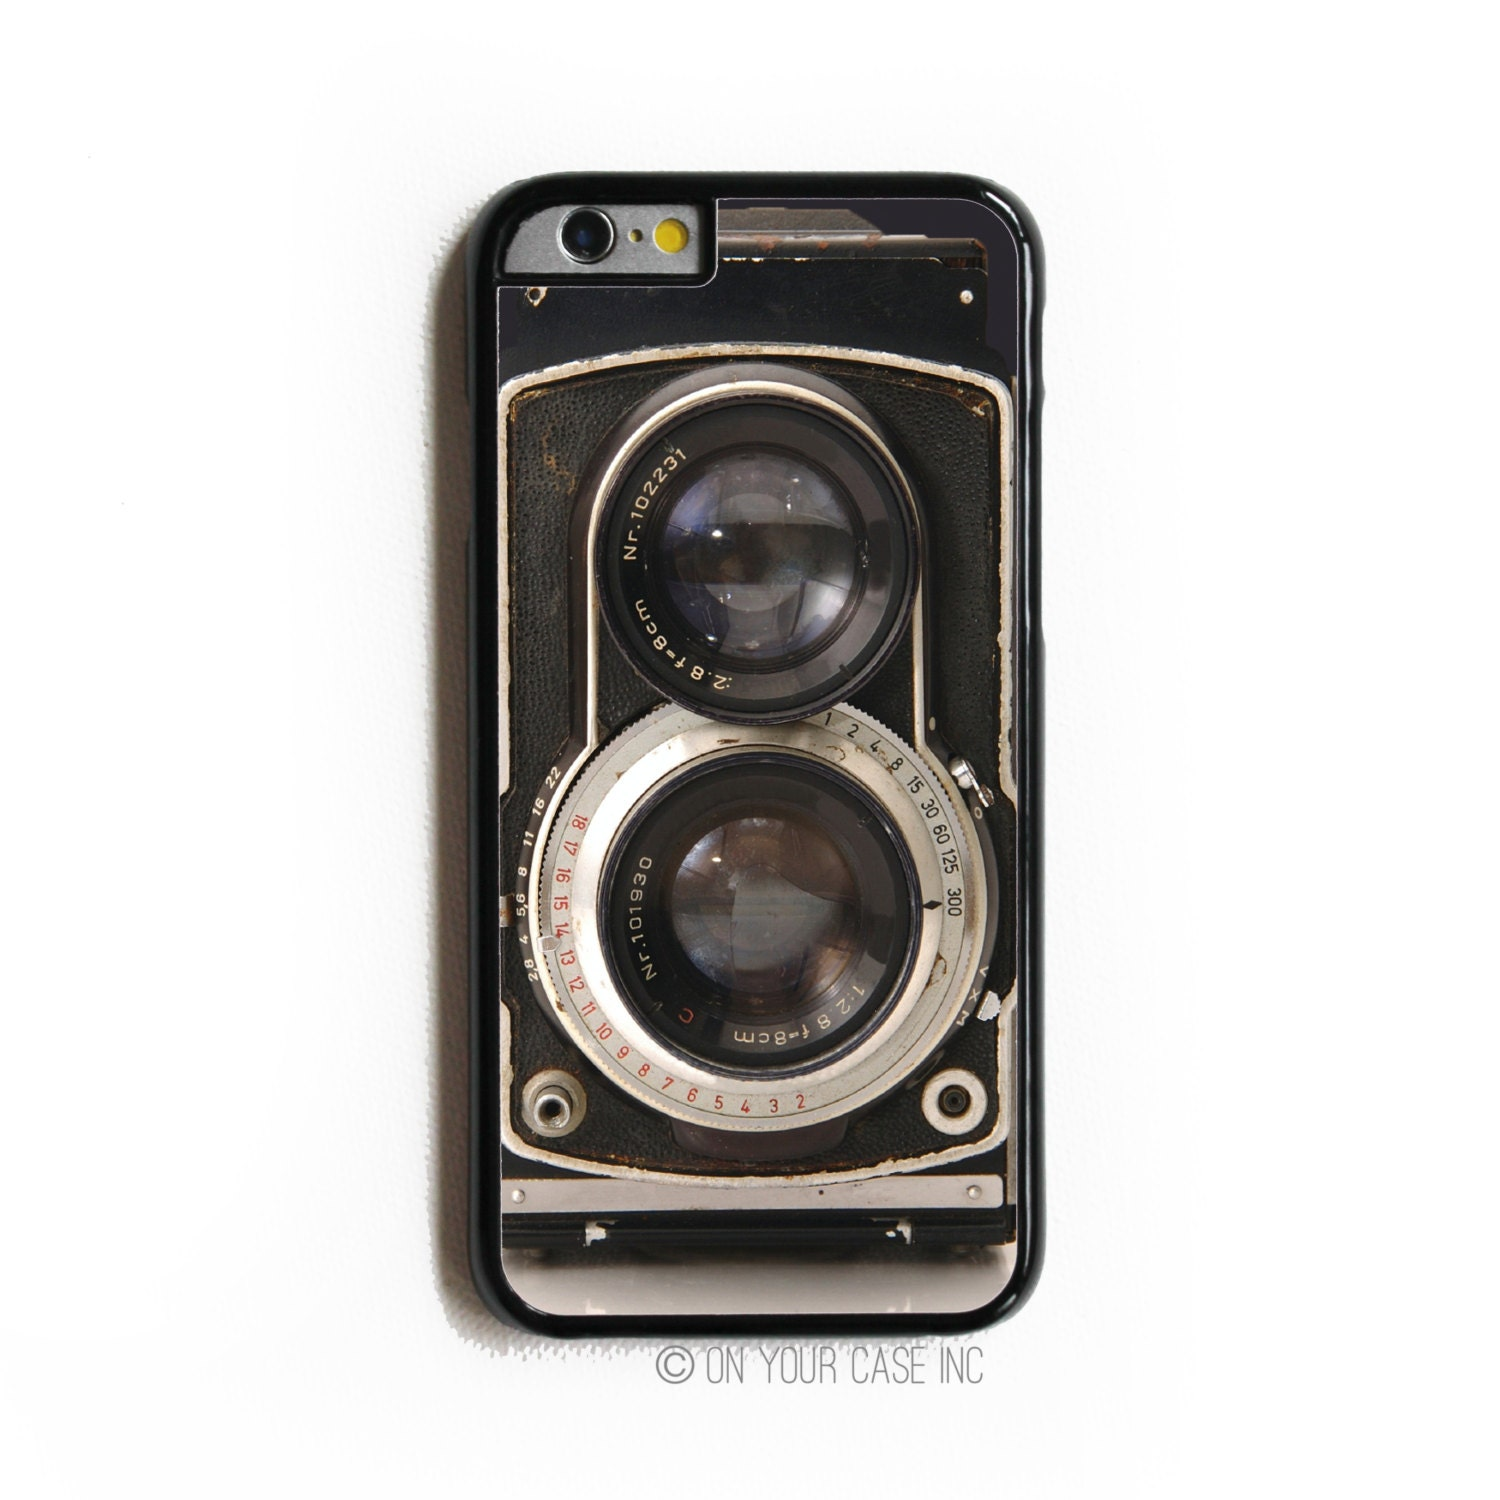 Vintage Camera Phone Case Old Film Camera Vintage PC Hard TPU Rubber Phone Case Cover For iPhone. Superior Quality, Our color matched plastic insert is nearly unbreakable, made of the highest level quality available! Protect your valuable Phone from scratch. Compact, Light weight.